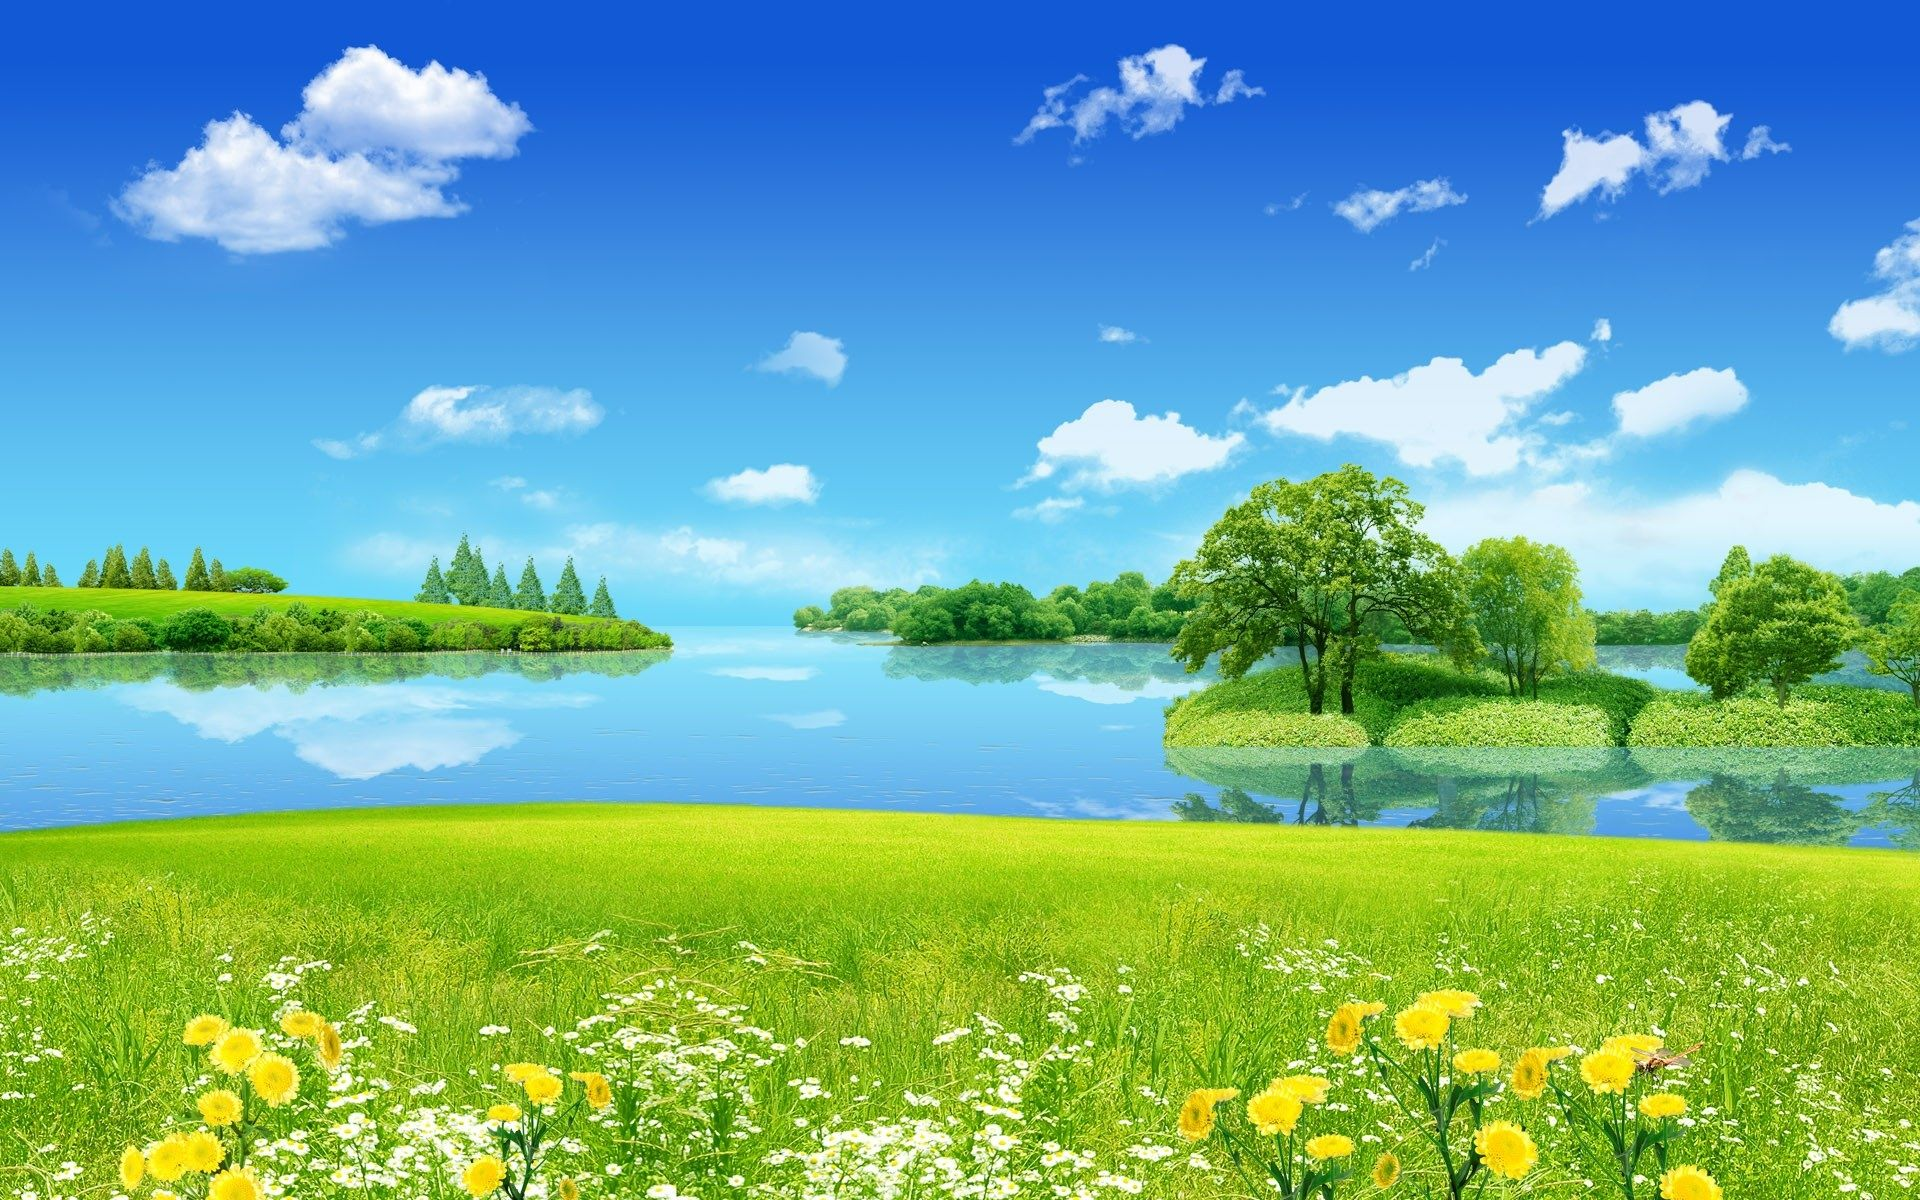 Nature Background Design Lastest Landscape Wallpaper Beautiful Nature Wallpaper Scenery Wallpaper